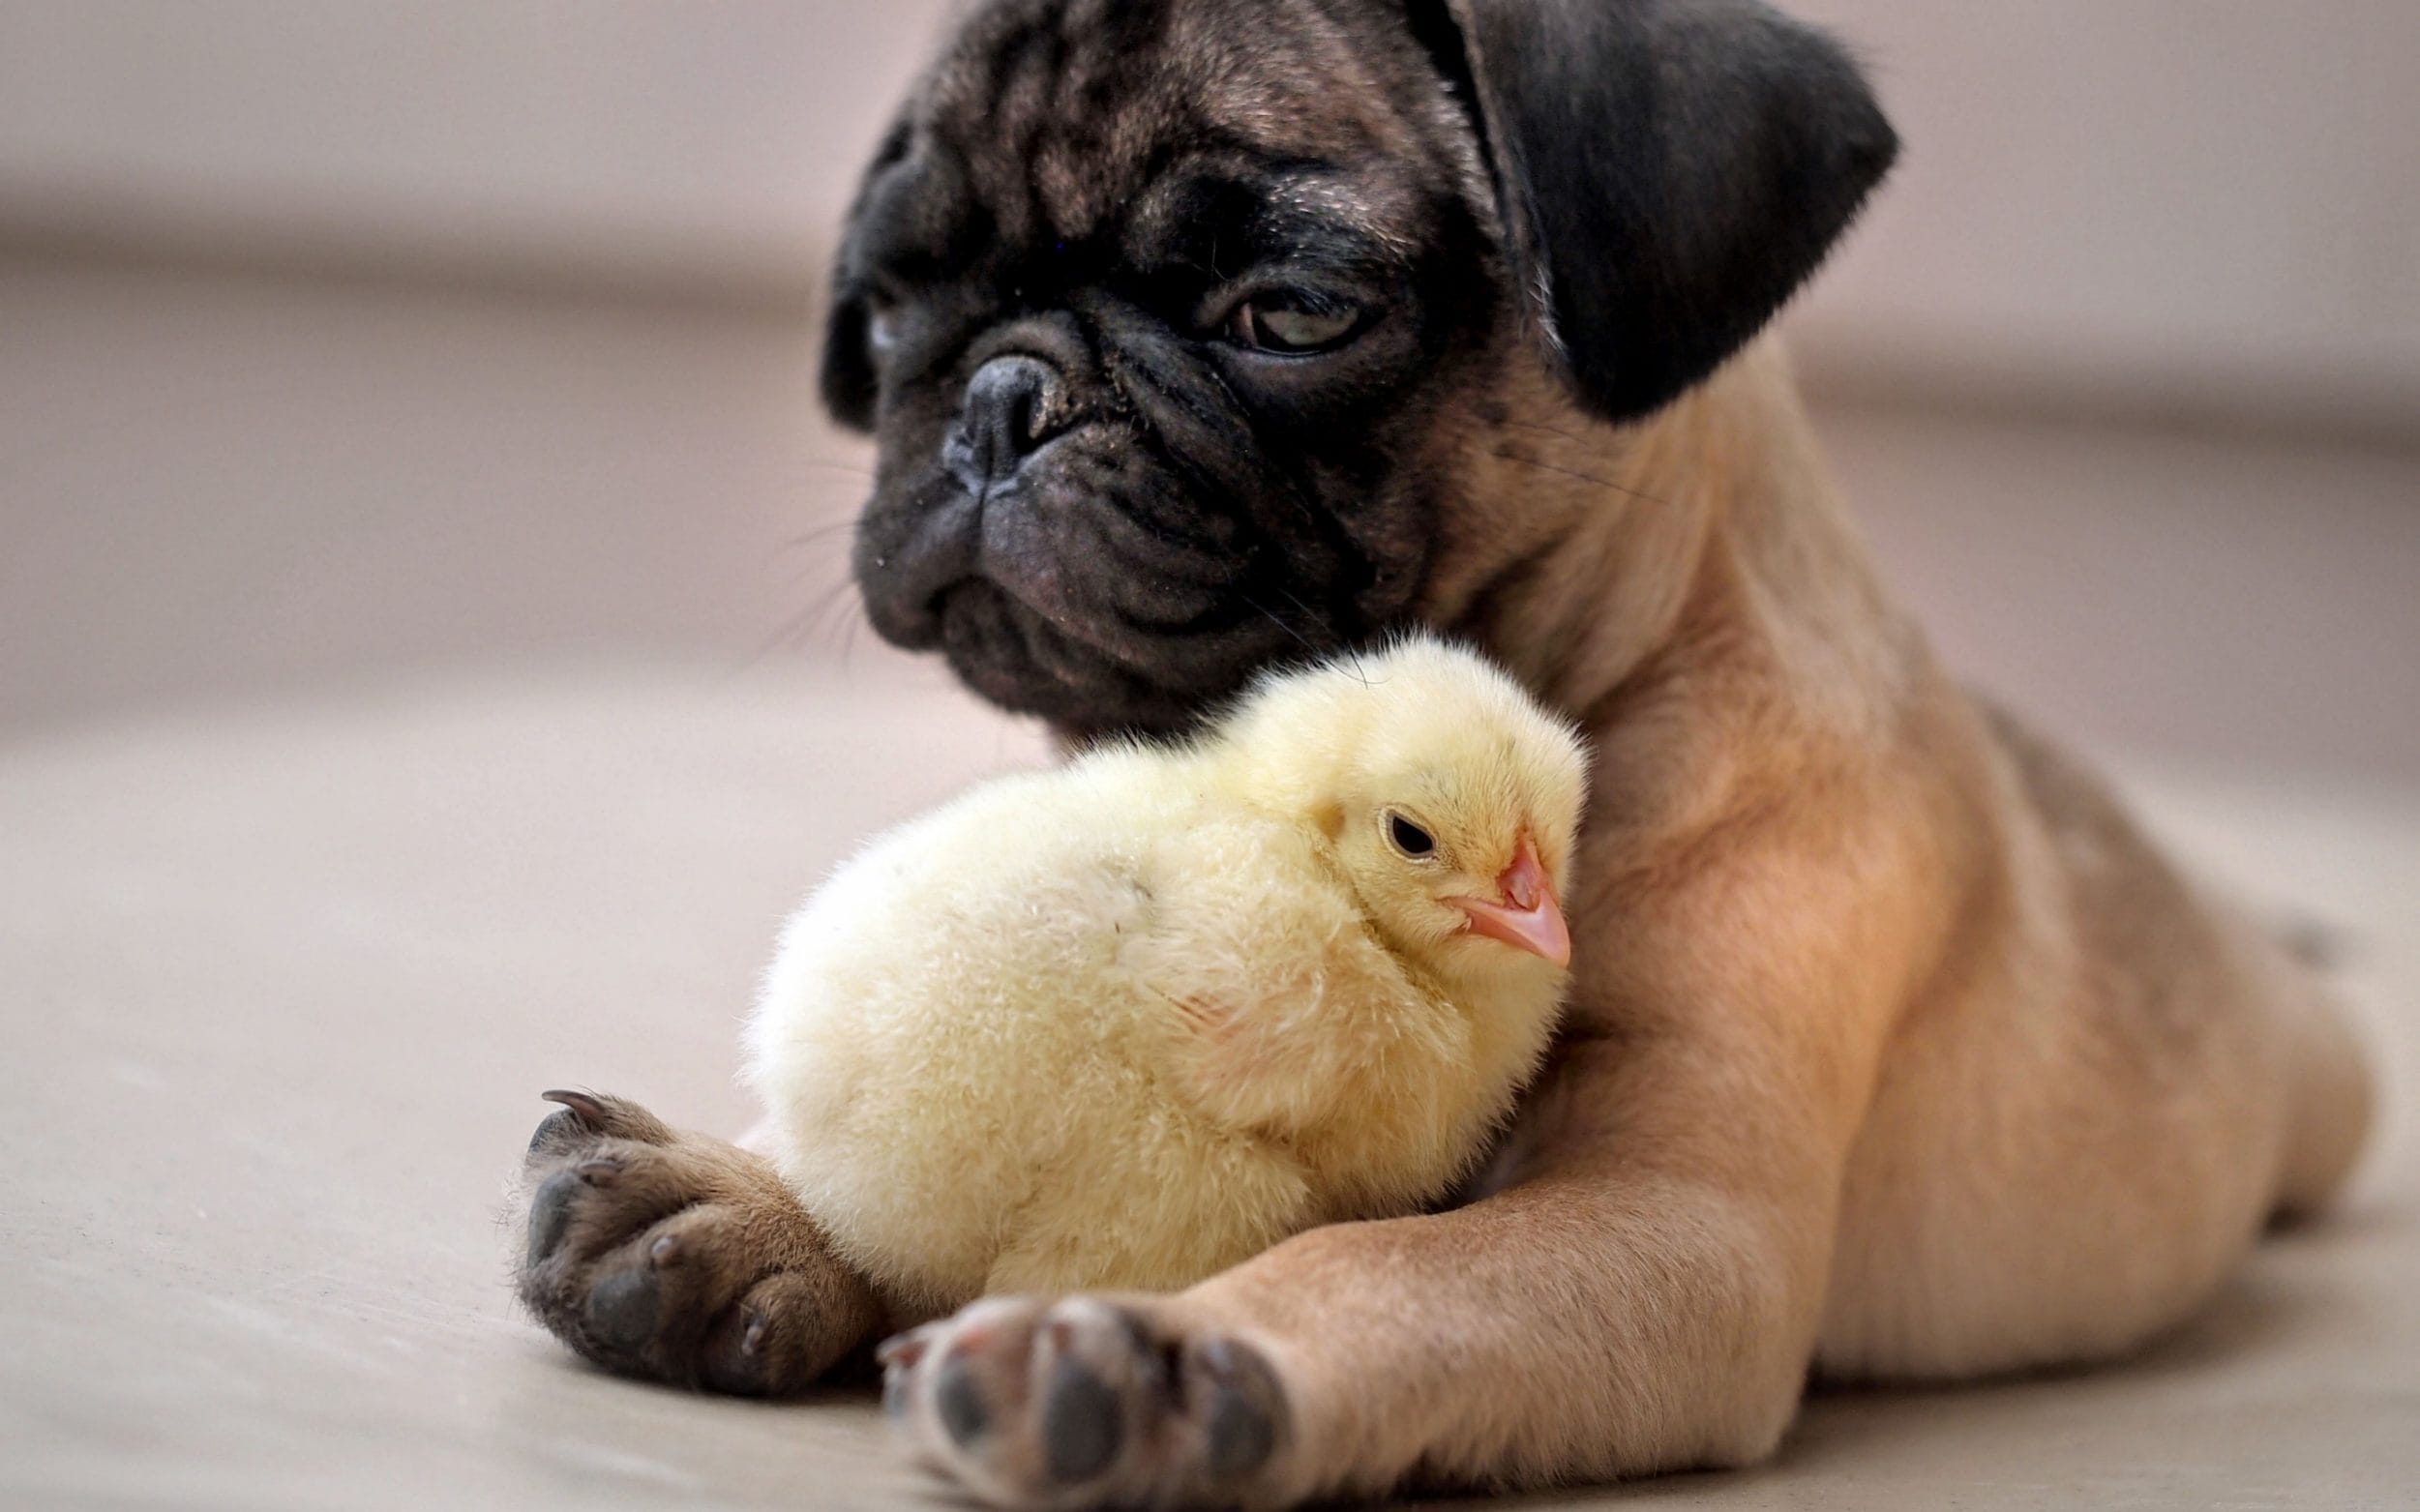 Cute Baby And Baba Wallpaper Unlikely Friendships In The Animal Kingdom In Pictures News